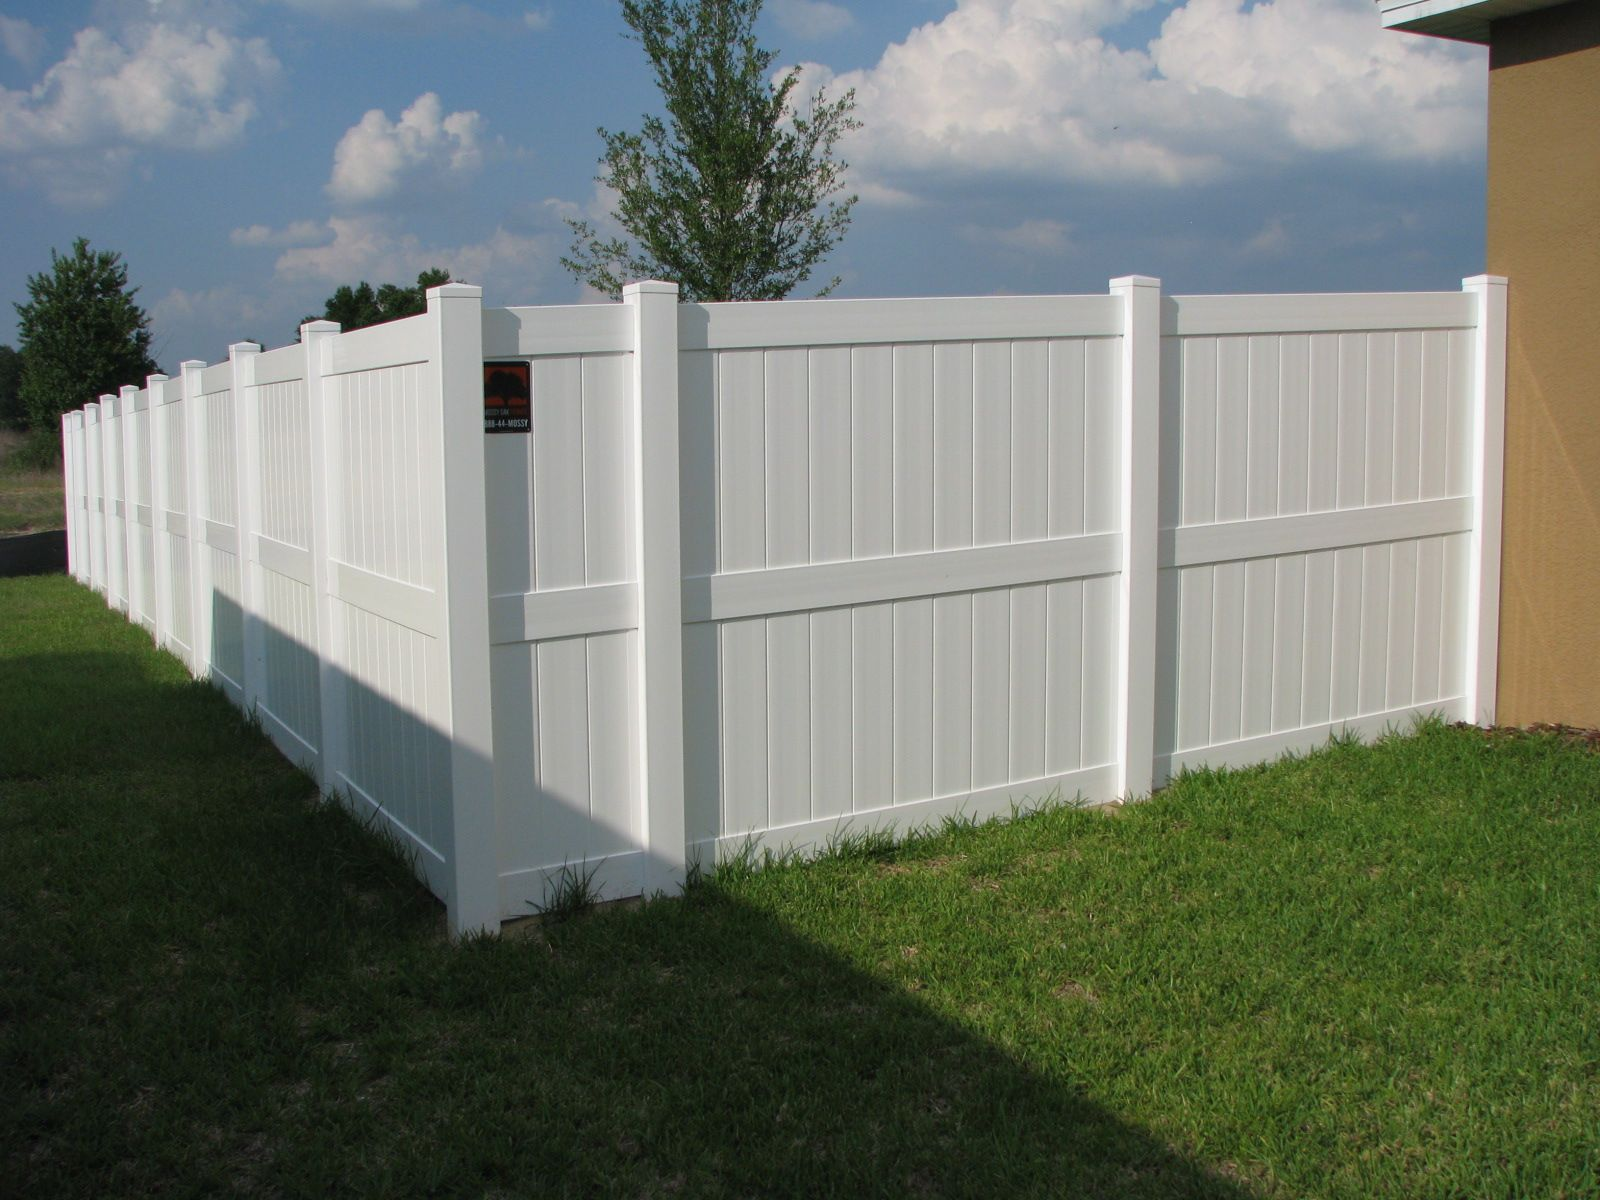 Custom white pvc midrail fence design mossy oak fence company for the last fifteen years florida has been the fasted growing vinyl fence market in the countr baanklon Gallery